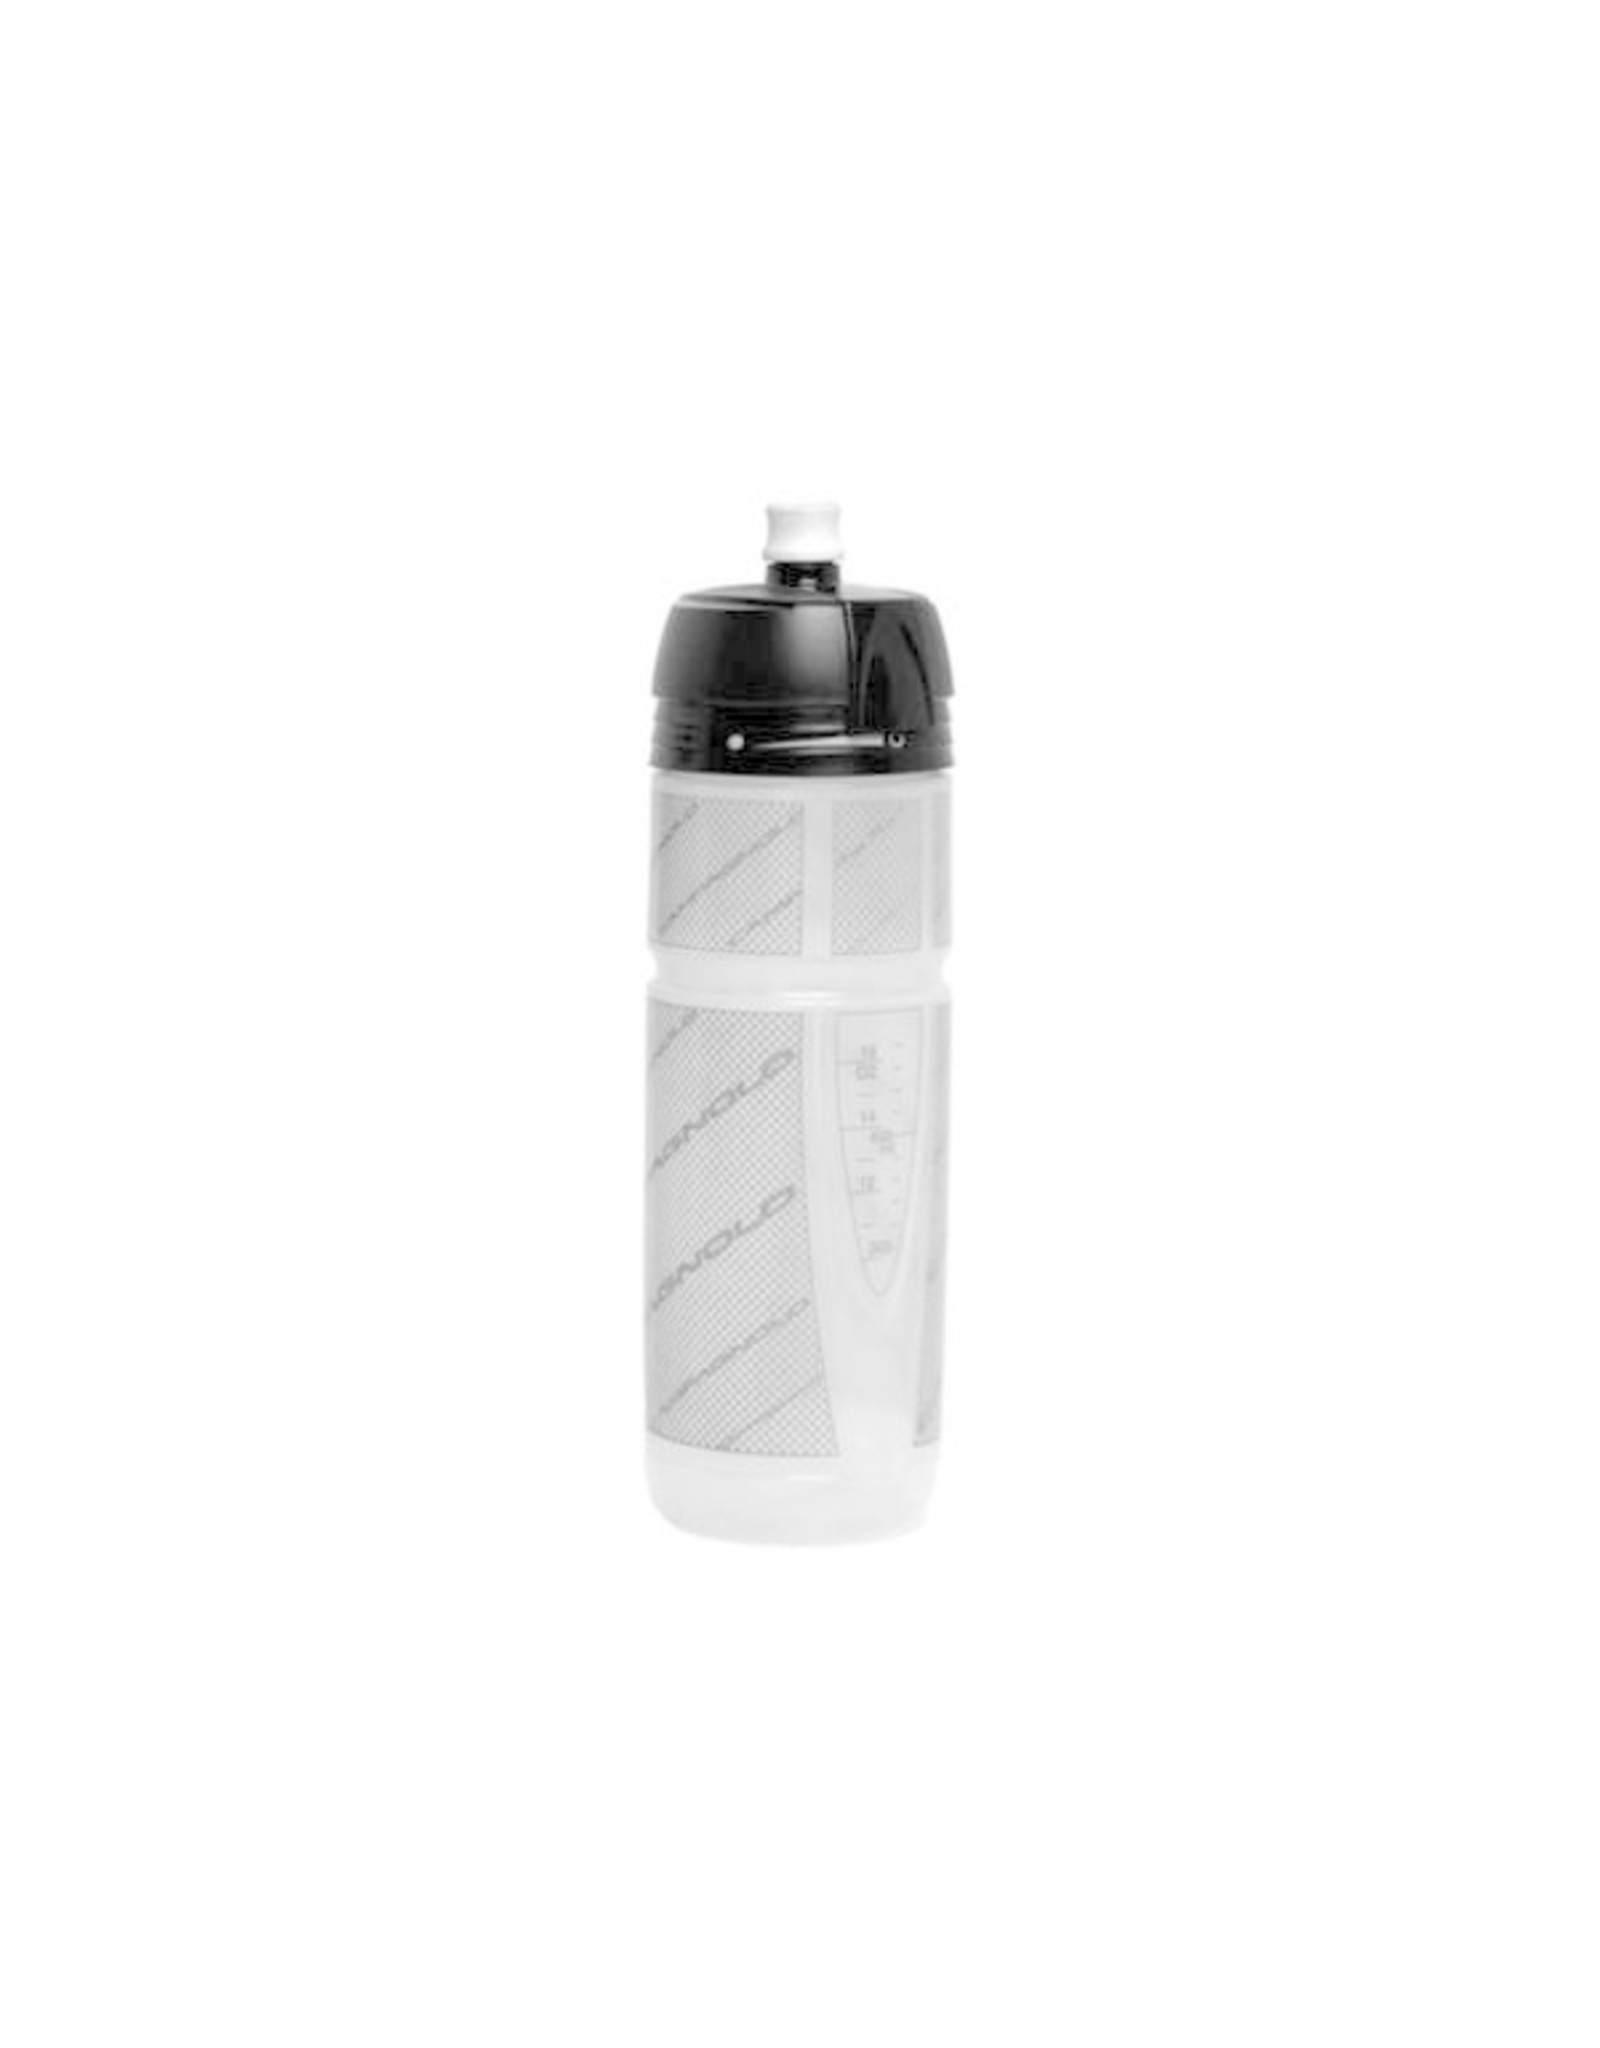 Super Record Water Bottle 750ml